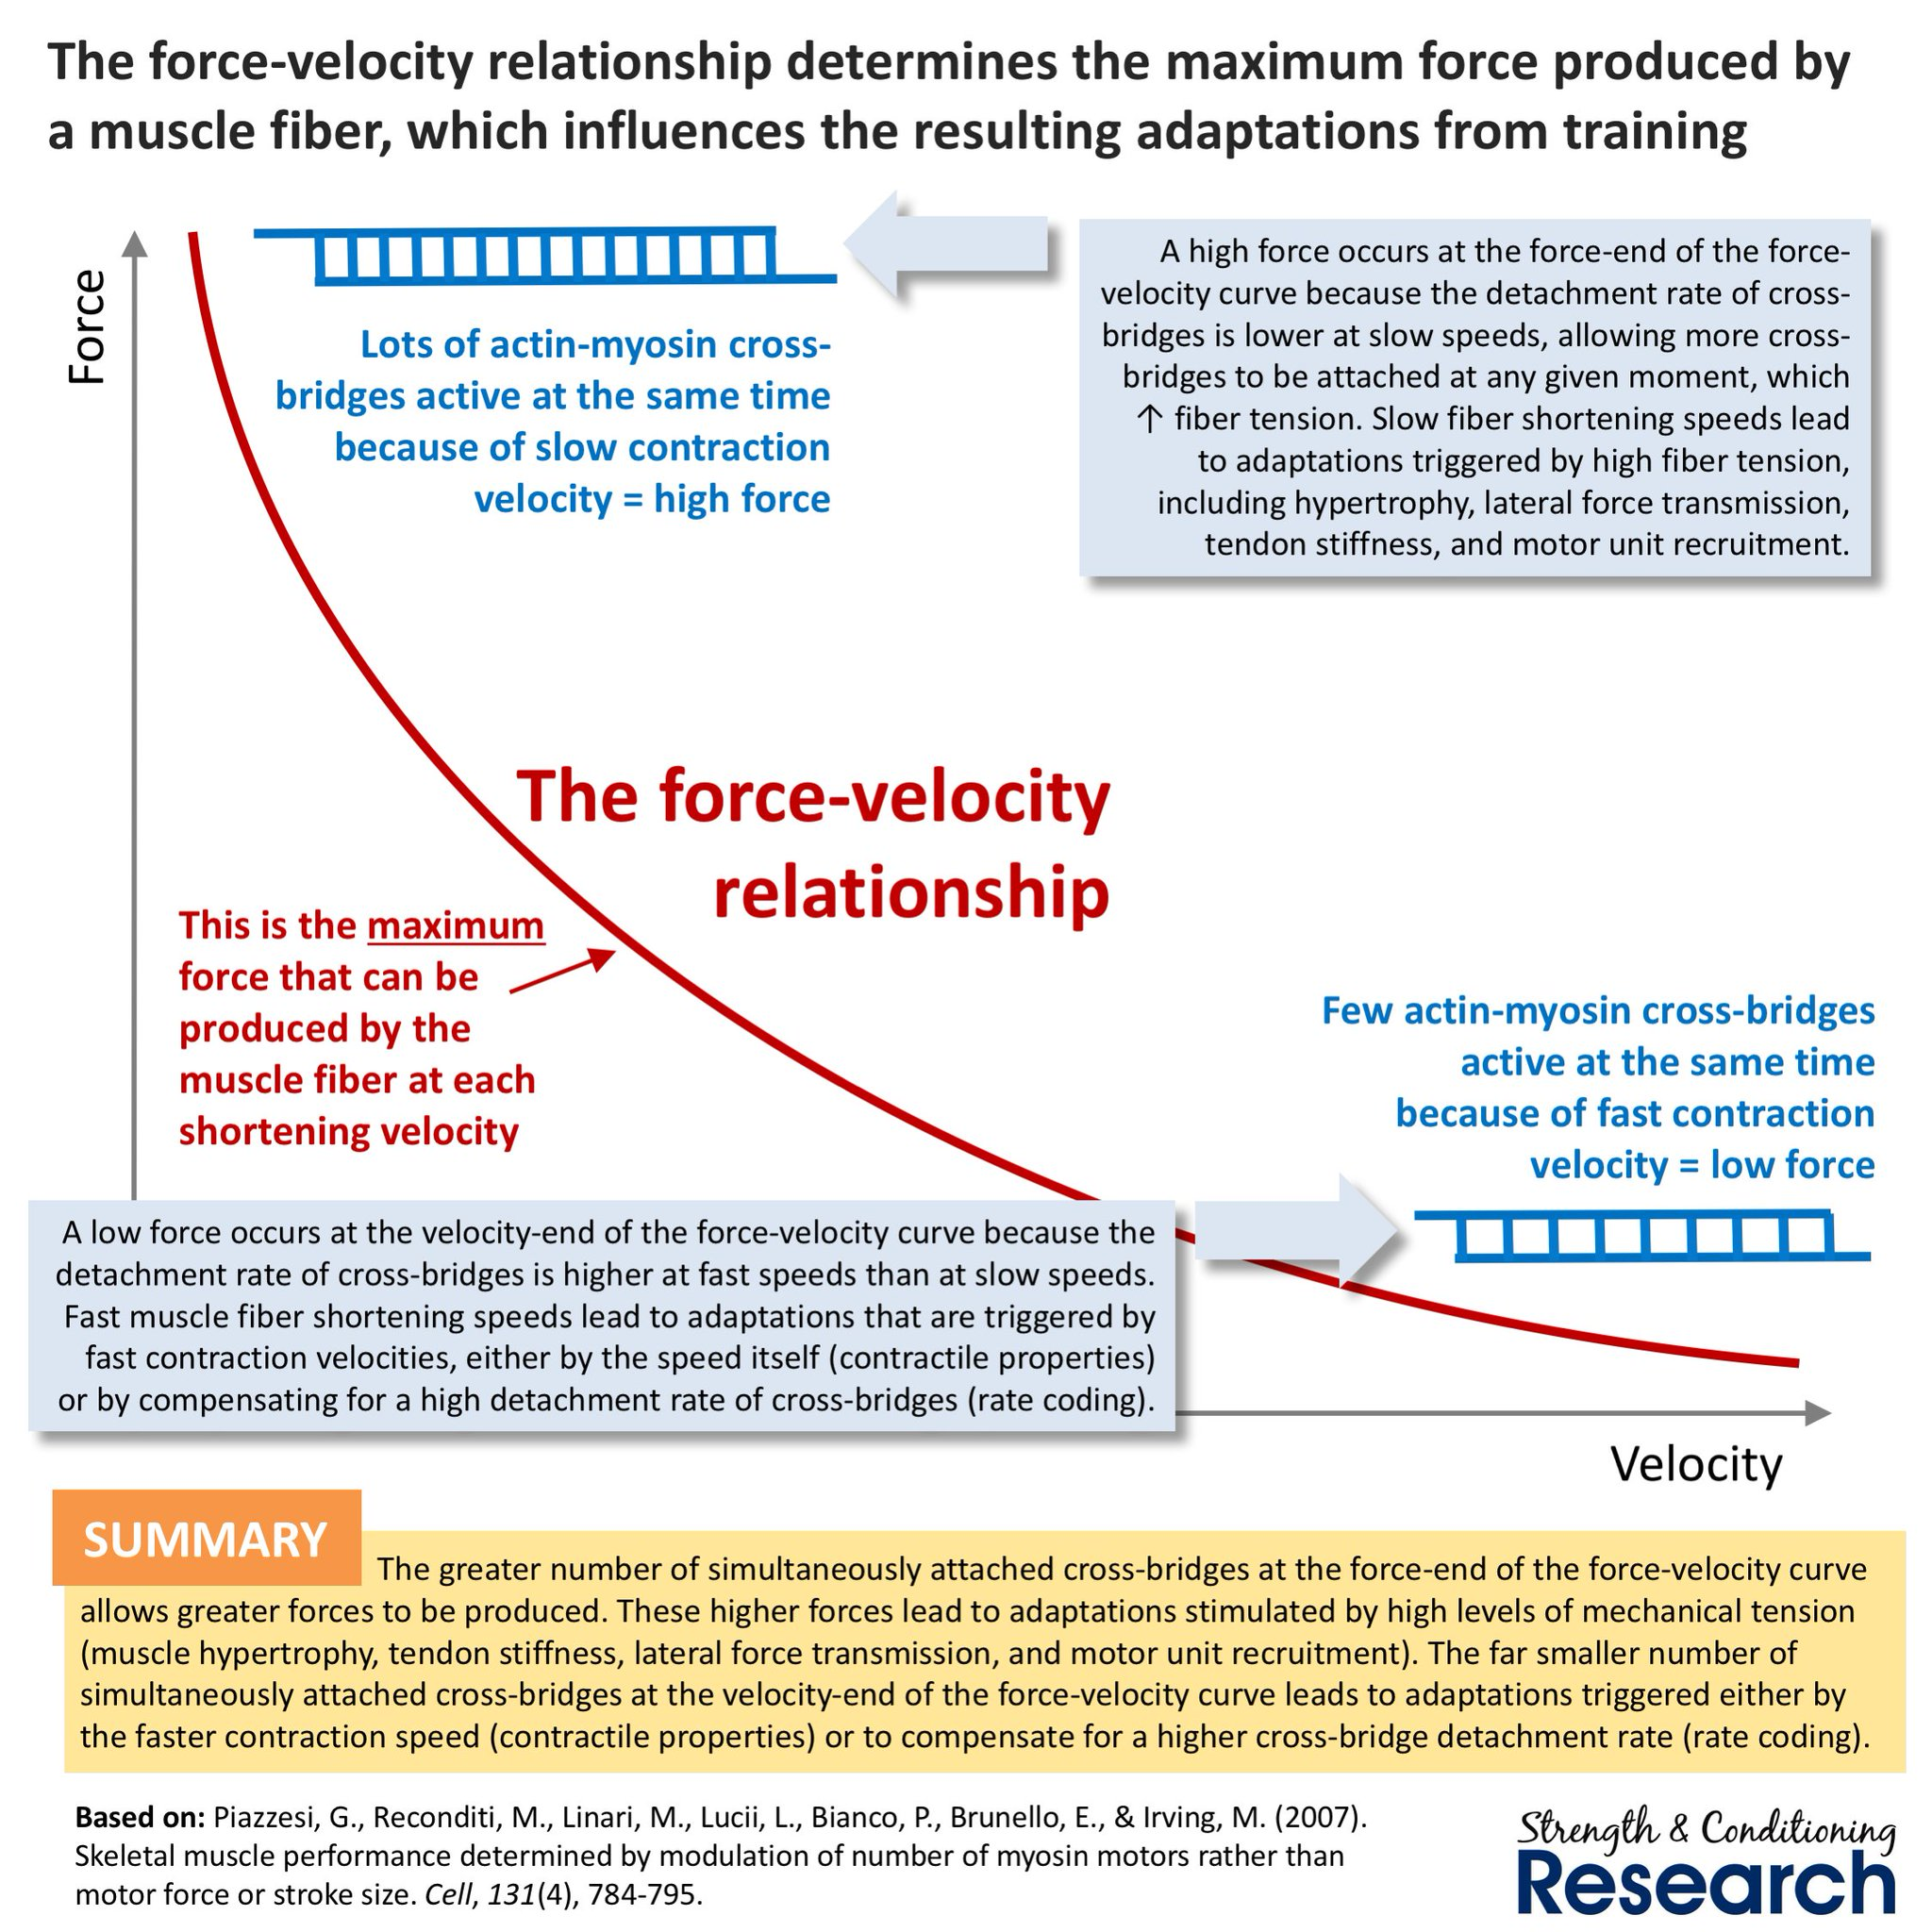 Do you want to stimulate tension-related adaptations that enhance maximum strength, or velocity-related adaptations that improve high-velocity strength? https://t.co/rWwPrxrM30